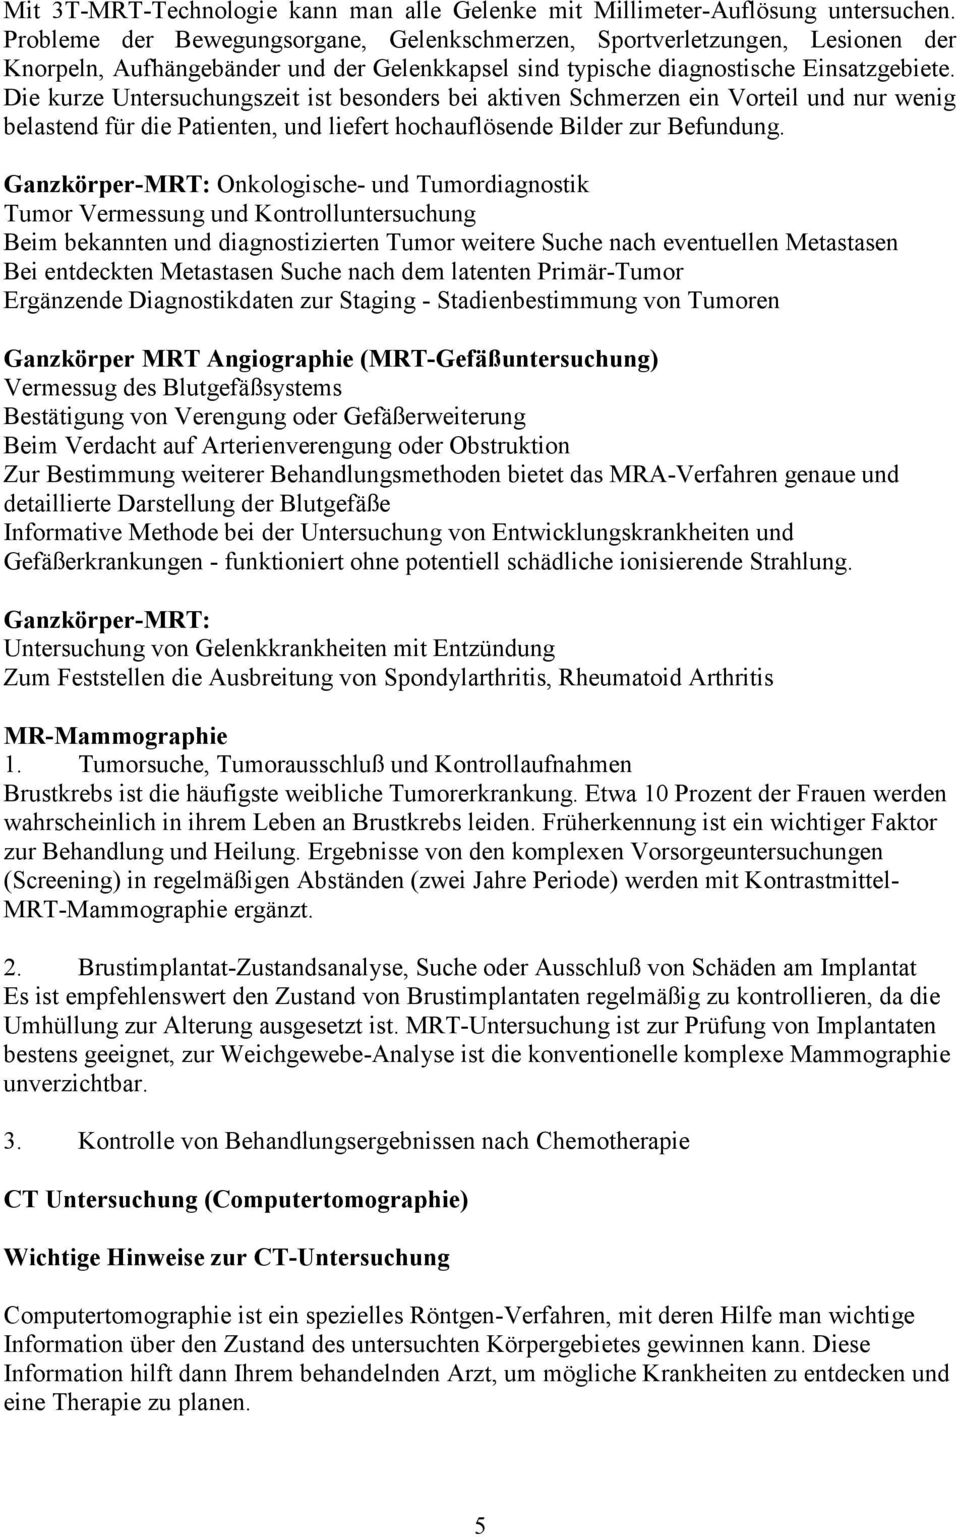 Wunderbar Therapeut Resume Beispiele Ideen - Entry Level Resume ...